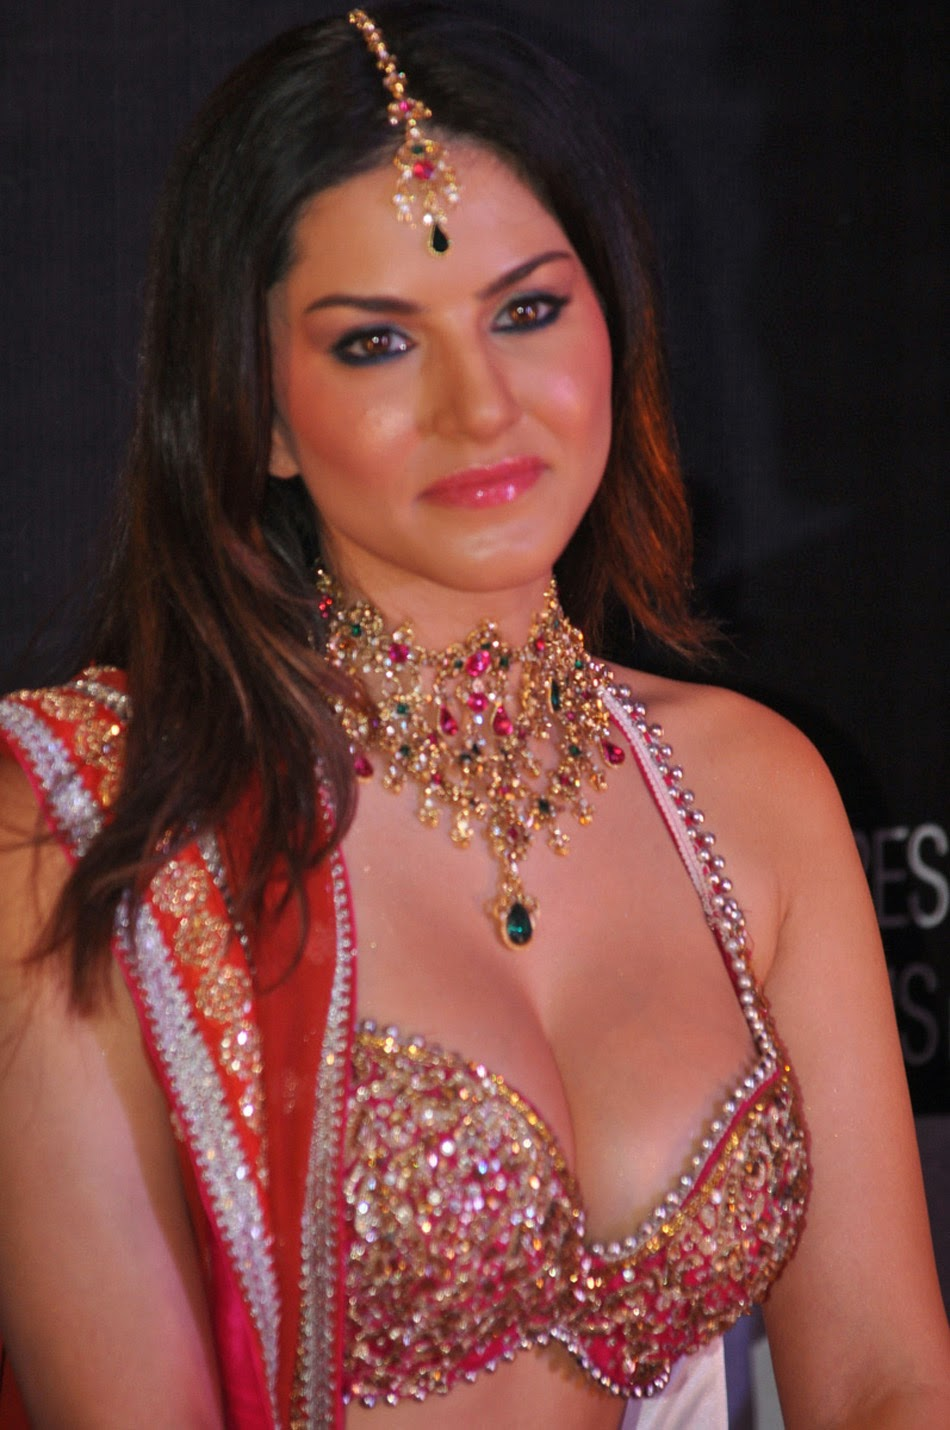 Sunny Leone Cleavage Close-Up Unseen rare Naked Nude Pics